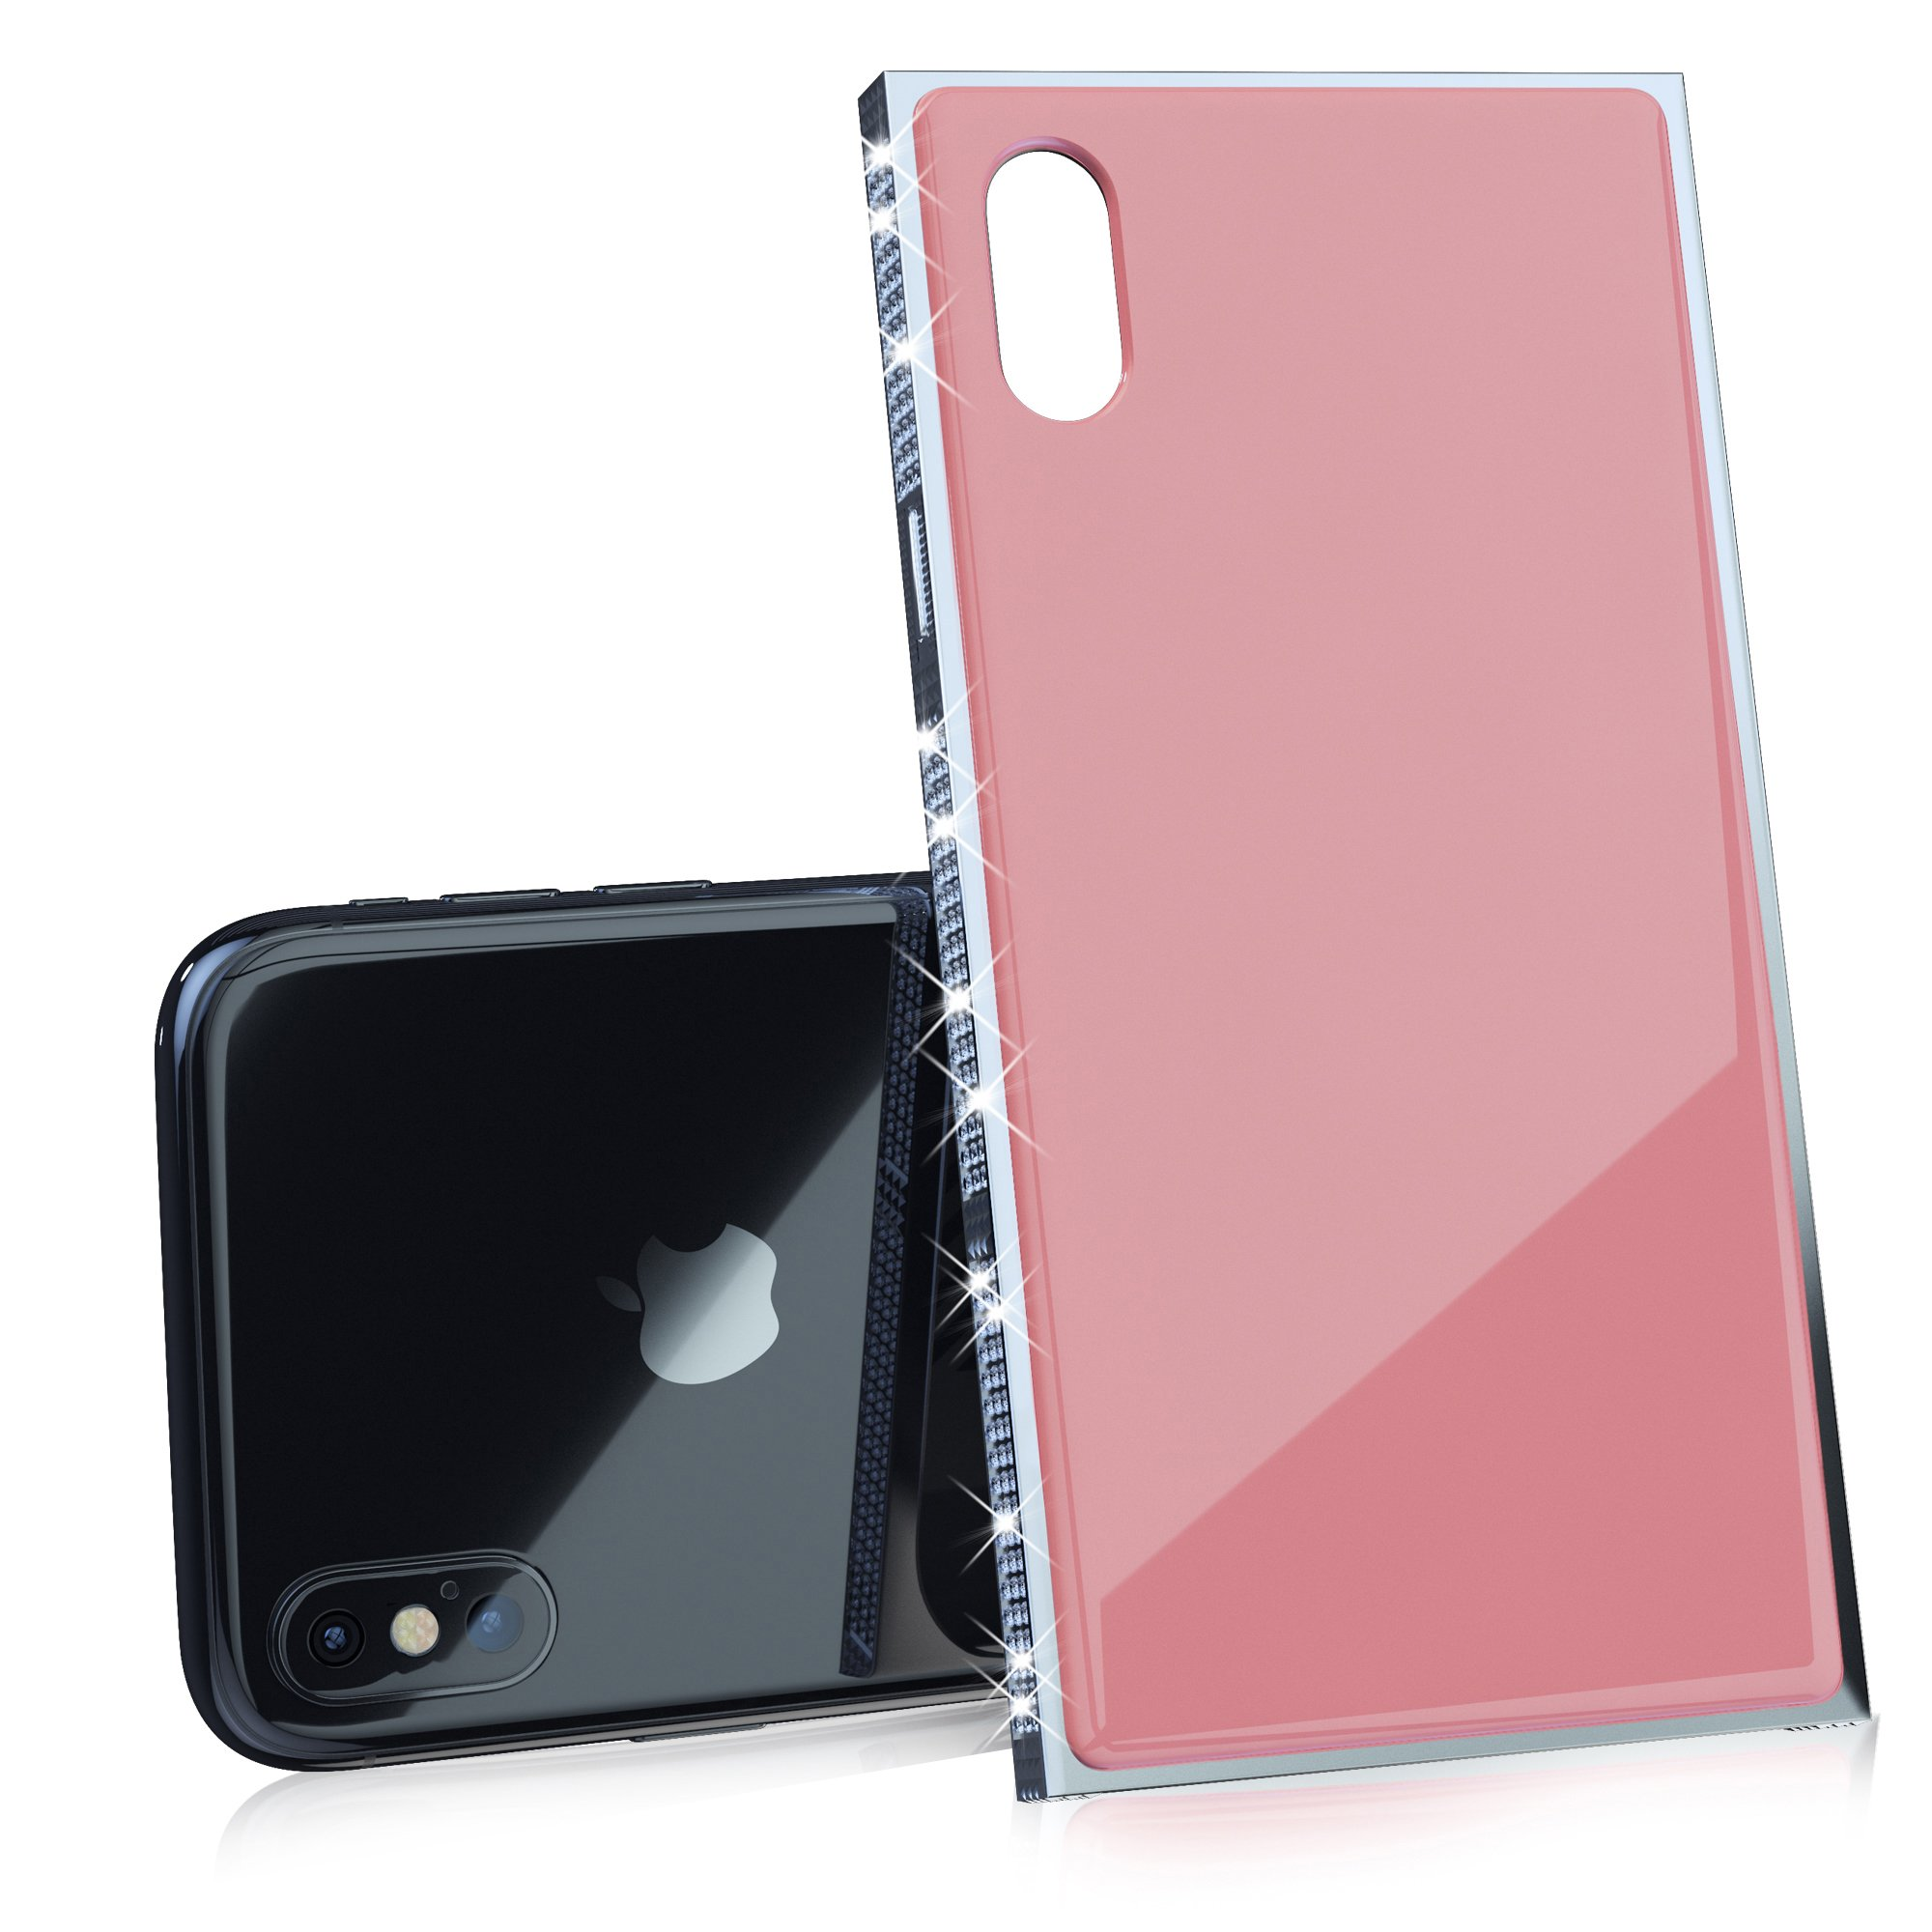 Luxury iPhone X Case with Rhinestones and 9H Tempered Glass, Drop Protection, Wireless Charging Compatible for Apple iPhone X (2017) -Pink